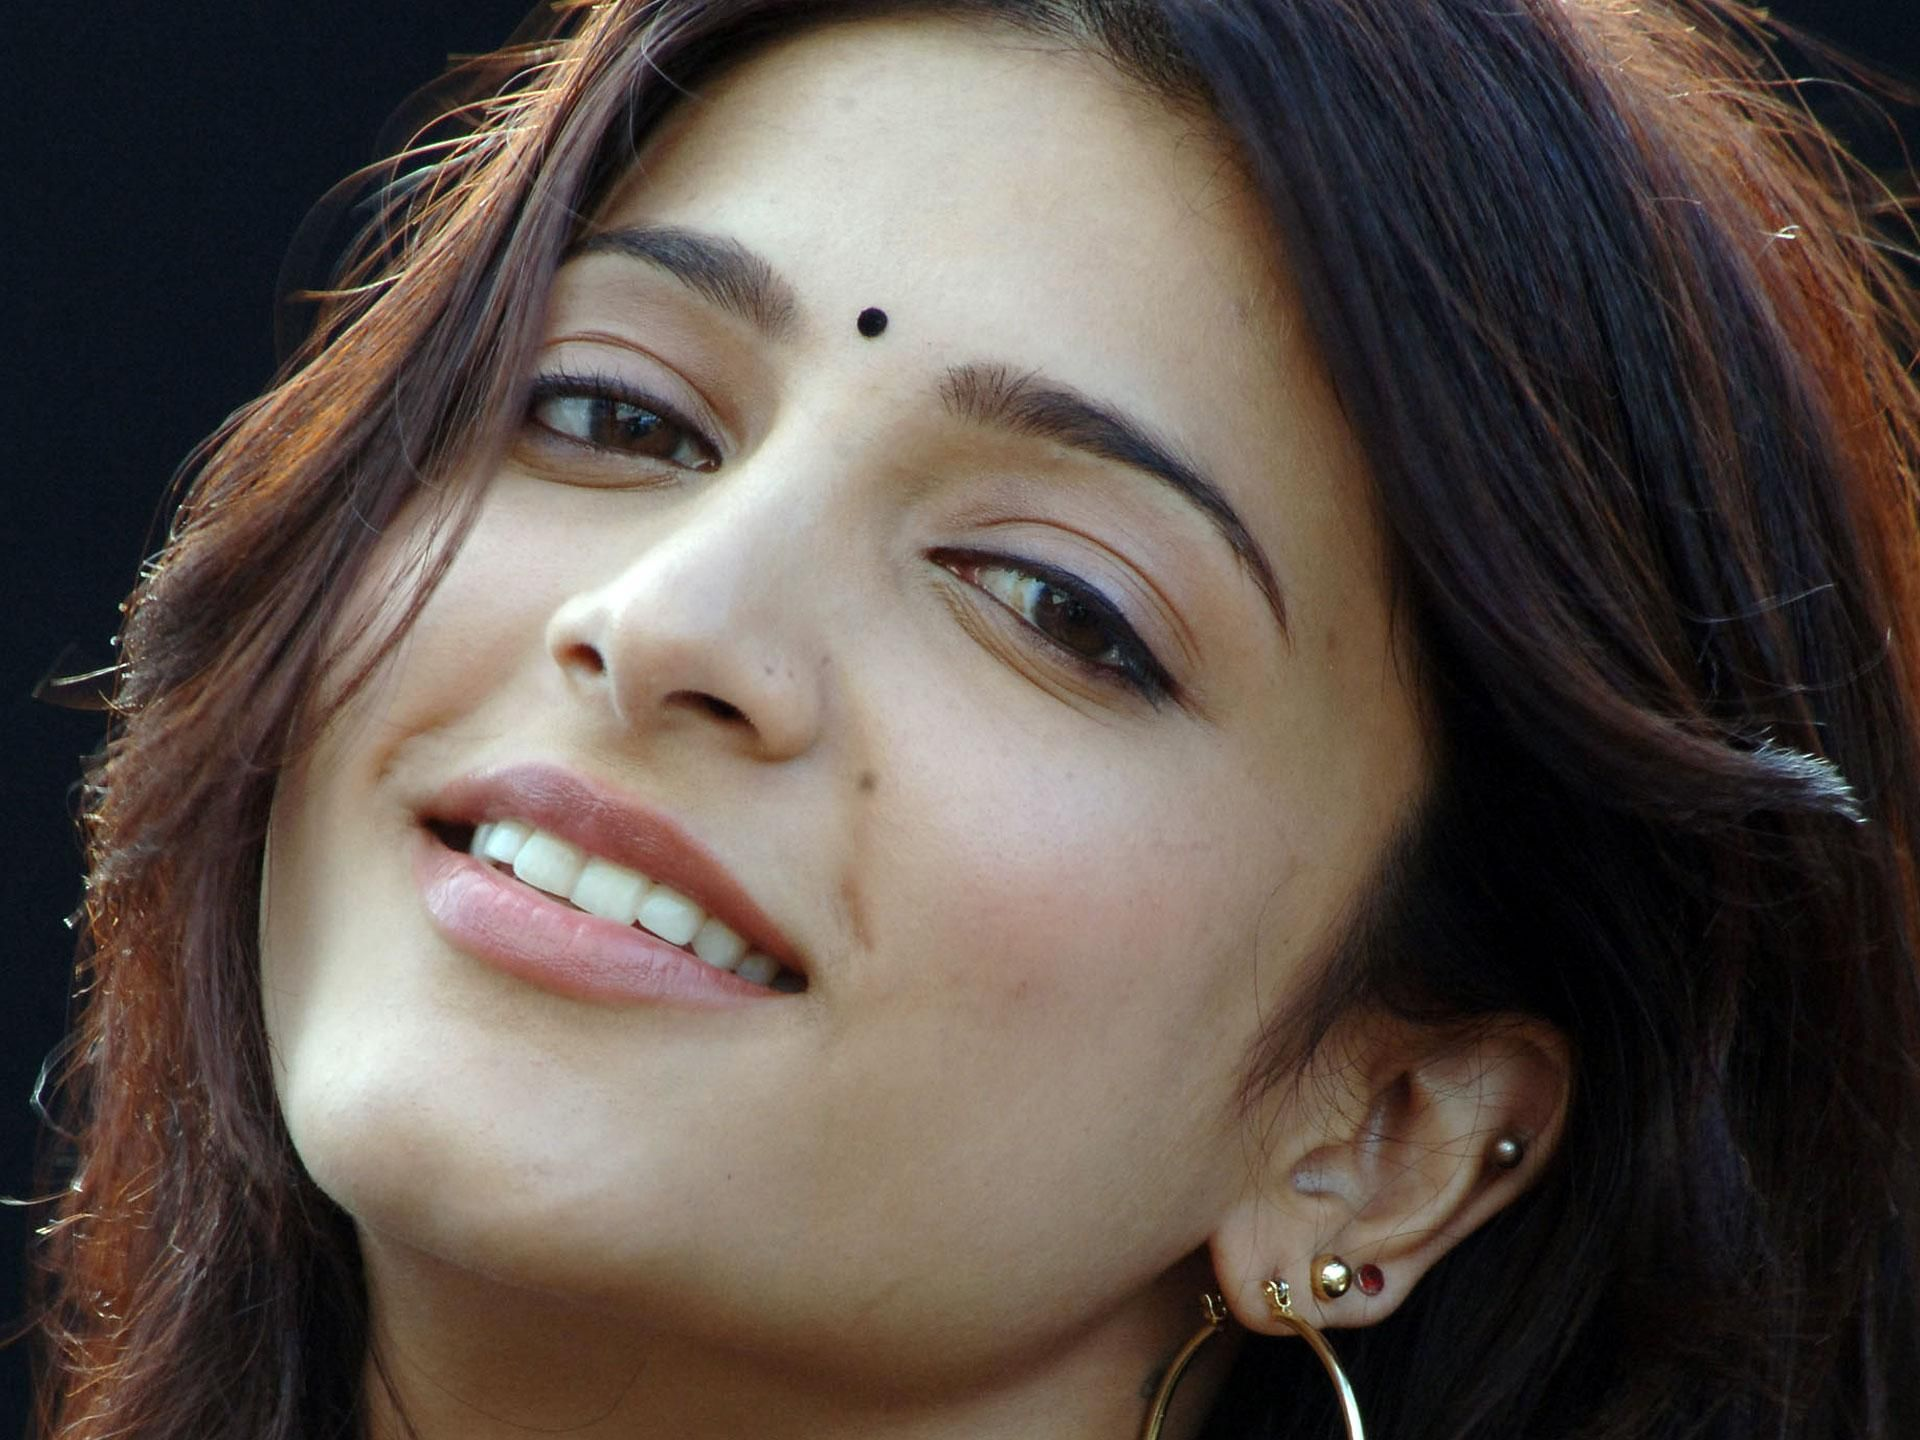 shruthi hassan - Google Search | Shruti Haasan - Hottest Babe In ...